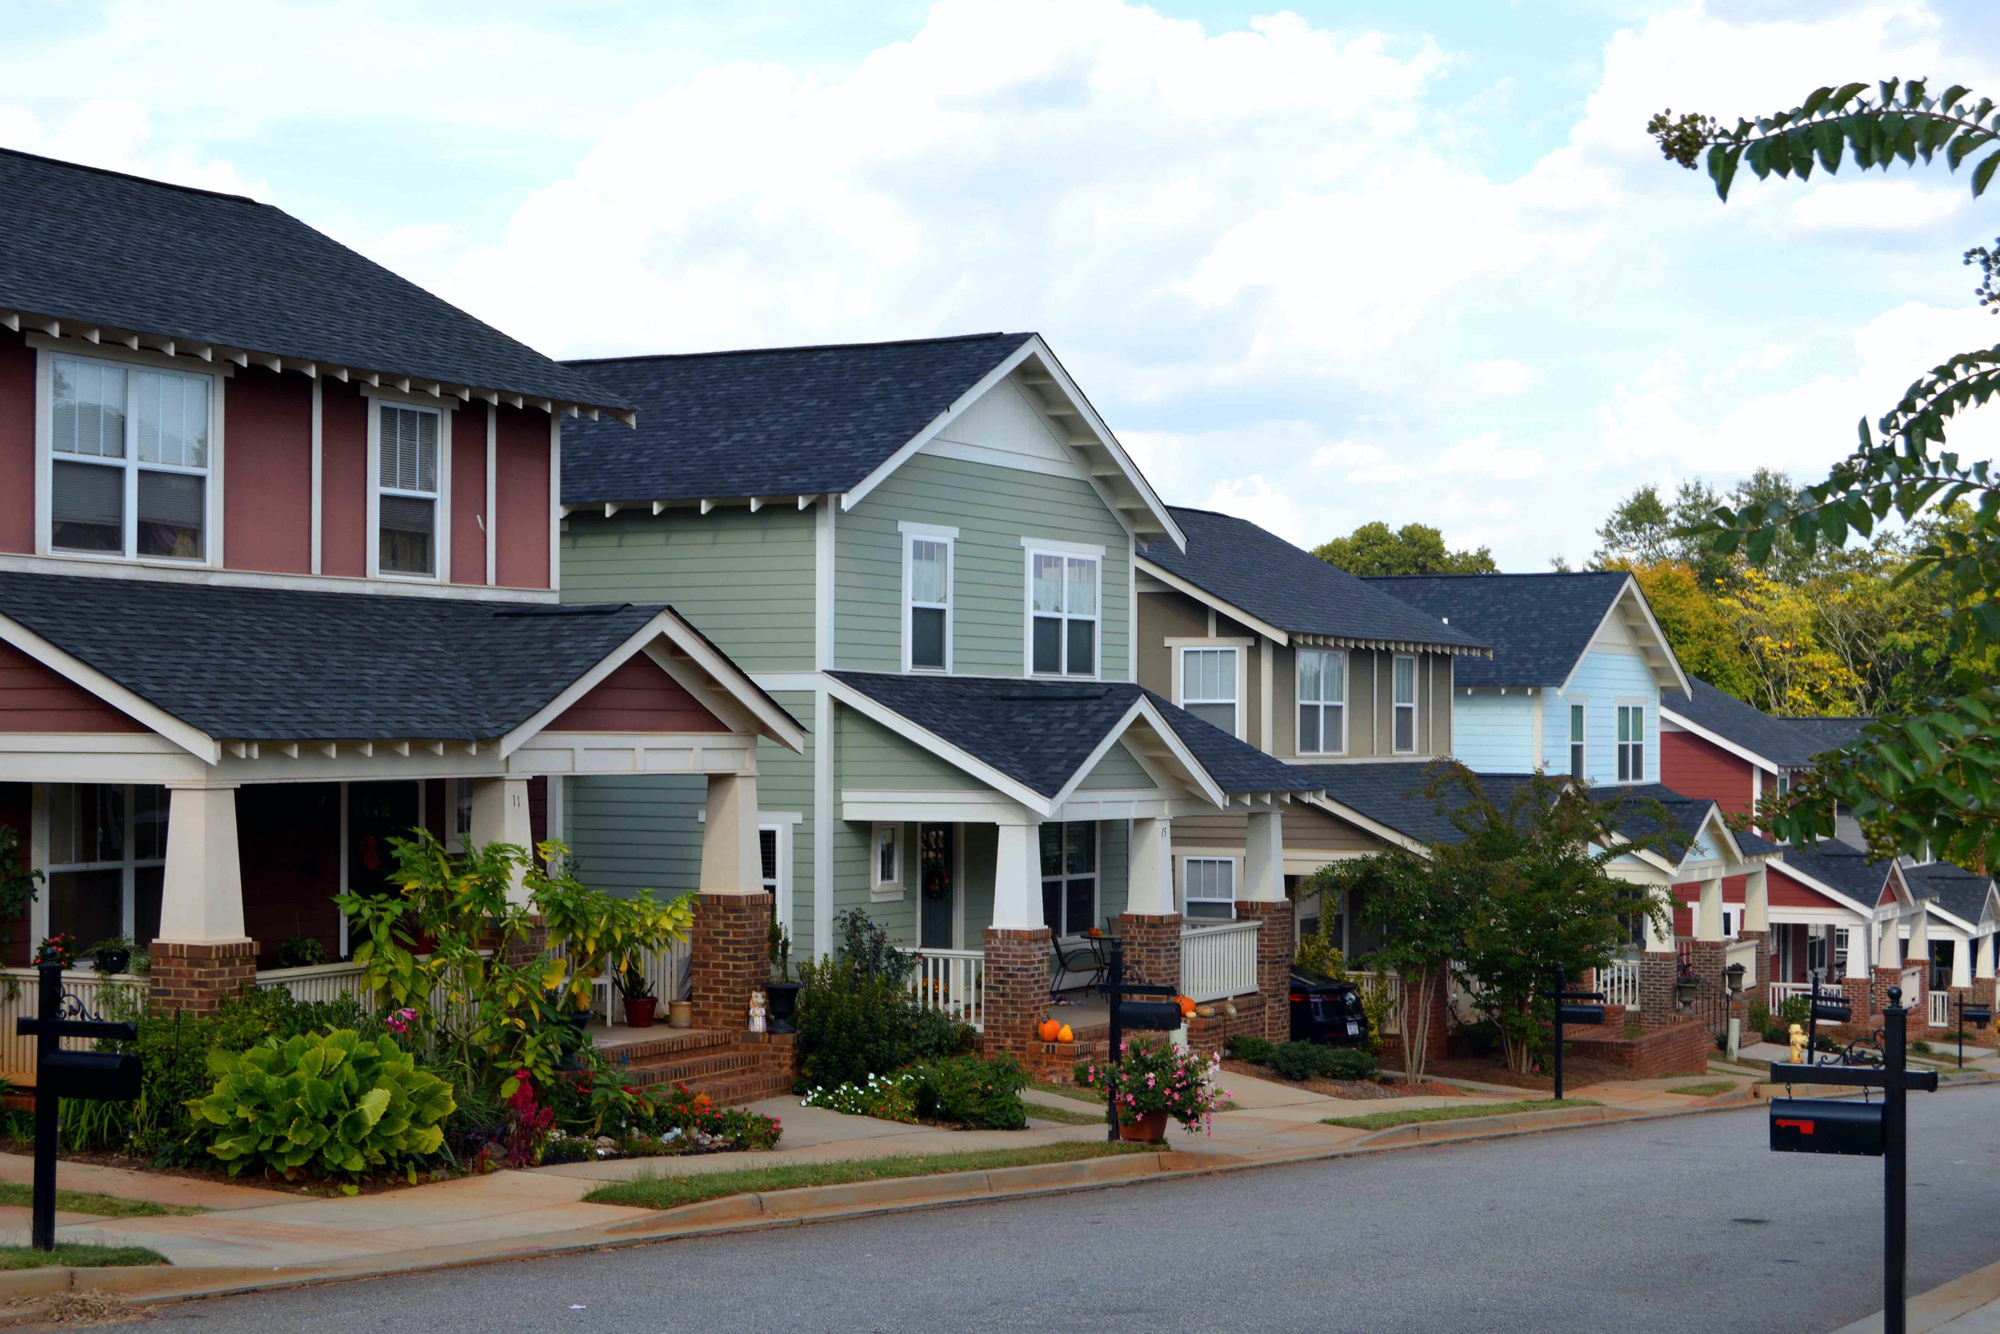 Greenville nonprofit to build low-income rentals in gentrifying areas